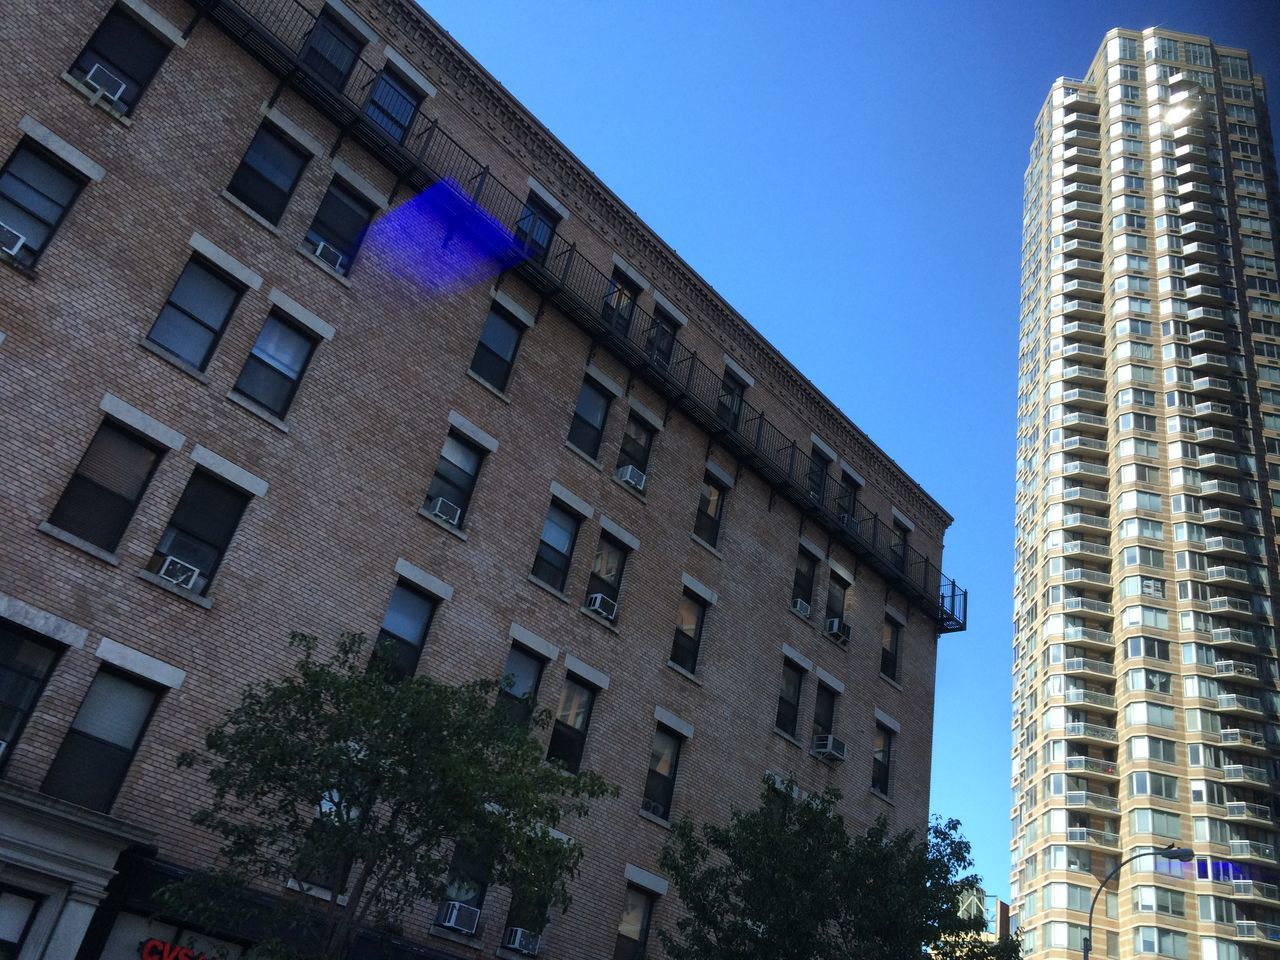 architecture, building exterior, built structure, low angle view, window, tree, day, no people, blue, clear sky, outdoors, sky, city